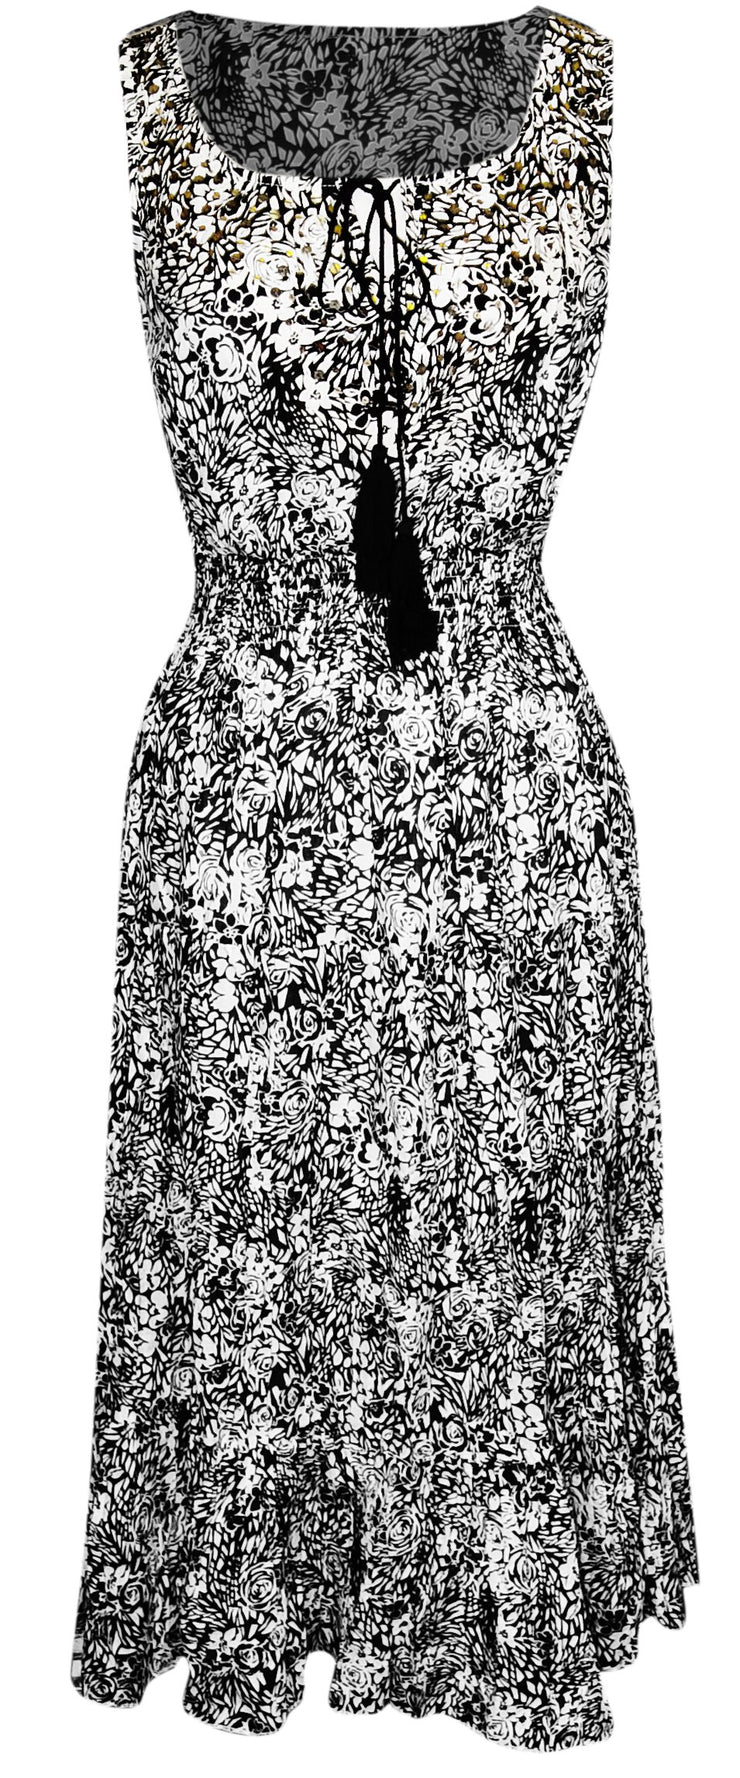 A1568-Floral-Sparkle-Dress-Black-Med-KL